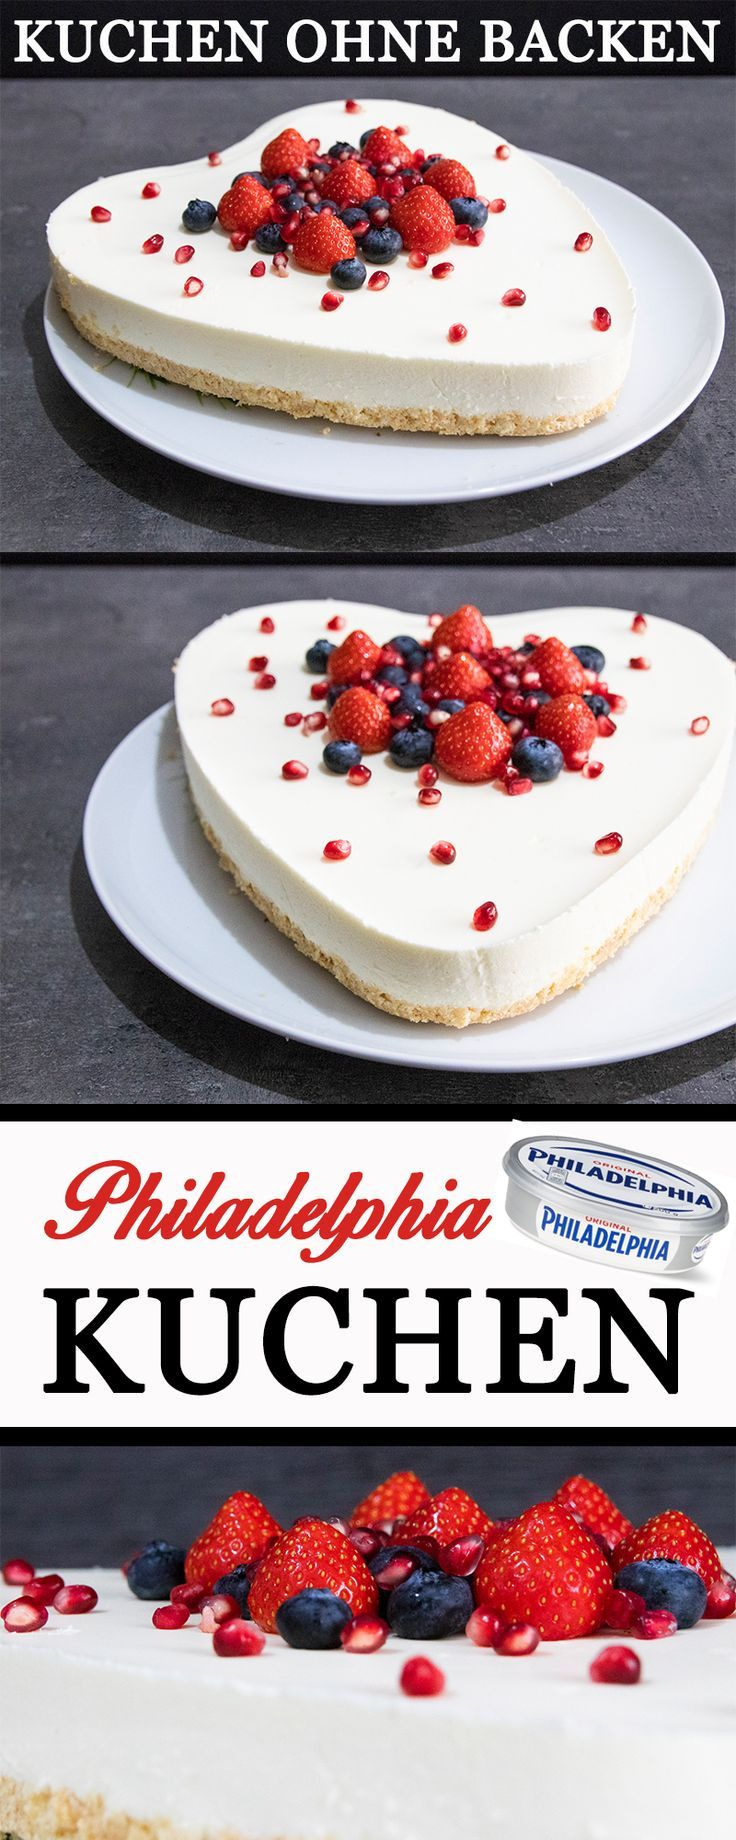 Philadelphia Kuchen Ohne Backen Today Pin Kuchen Ohne Backen Philadelphia Torte Ohne Backen Philadelphia Kuchen